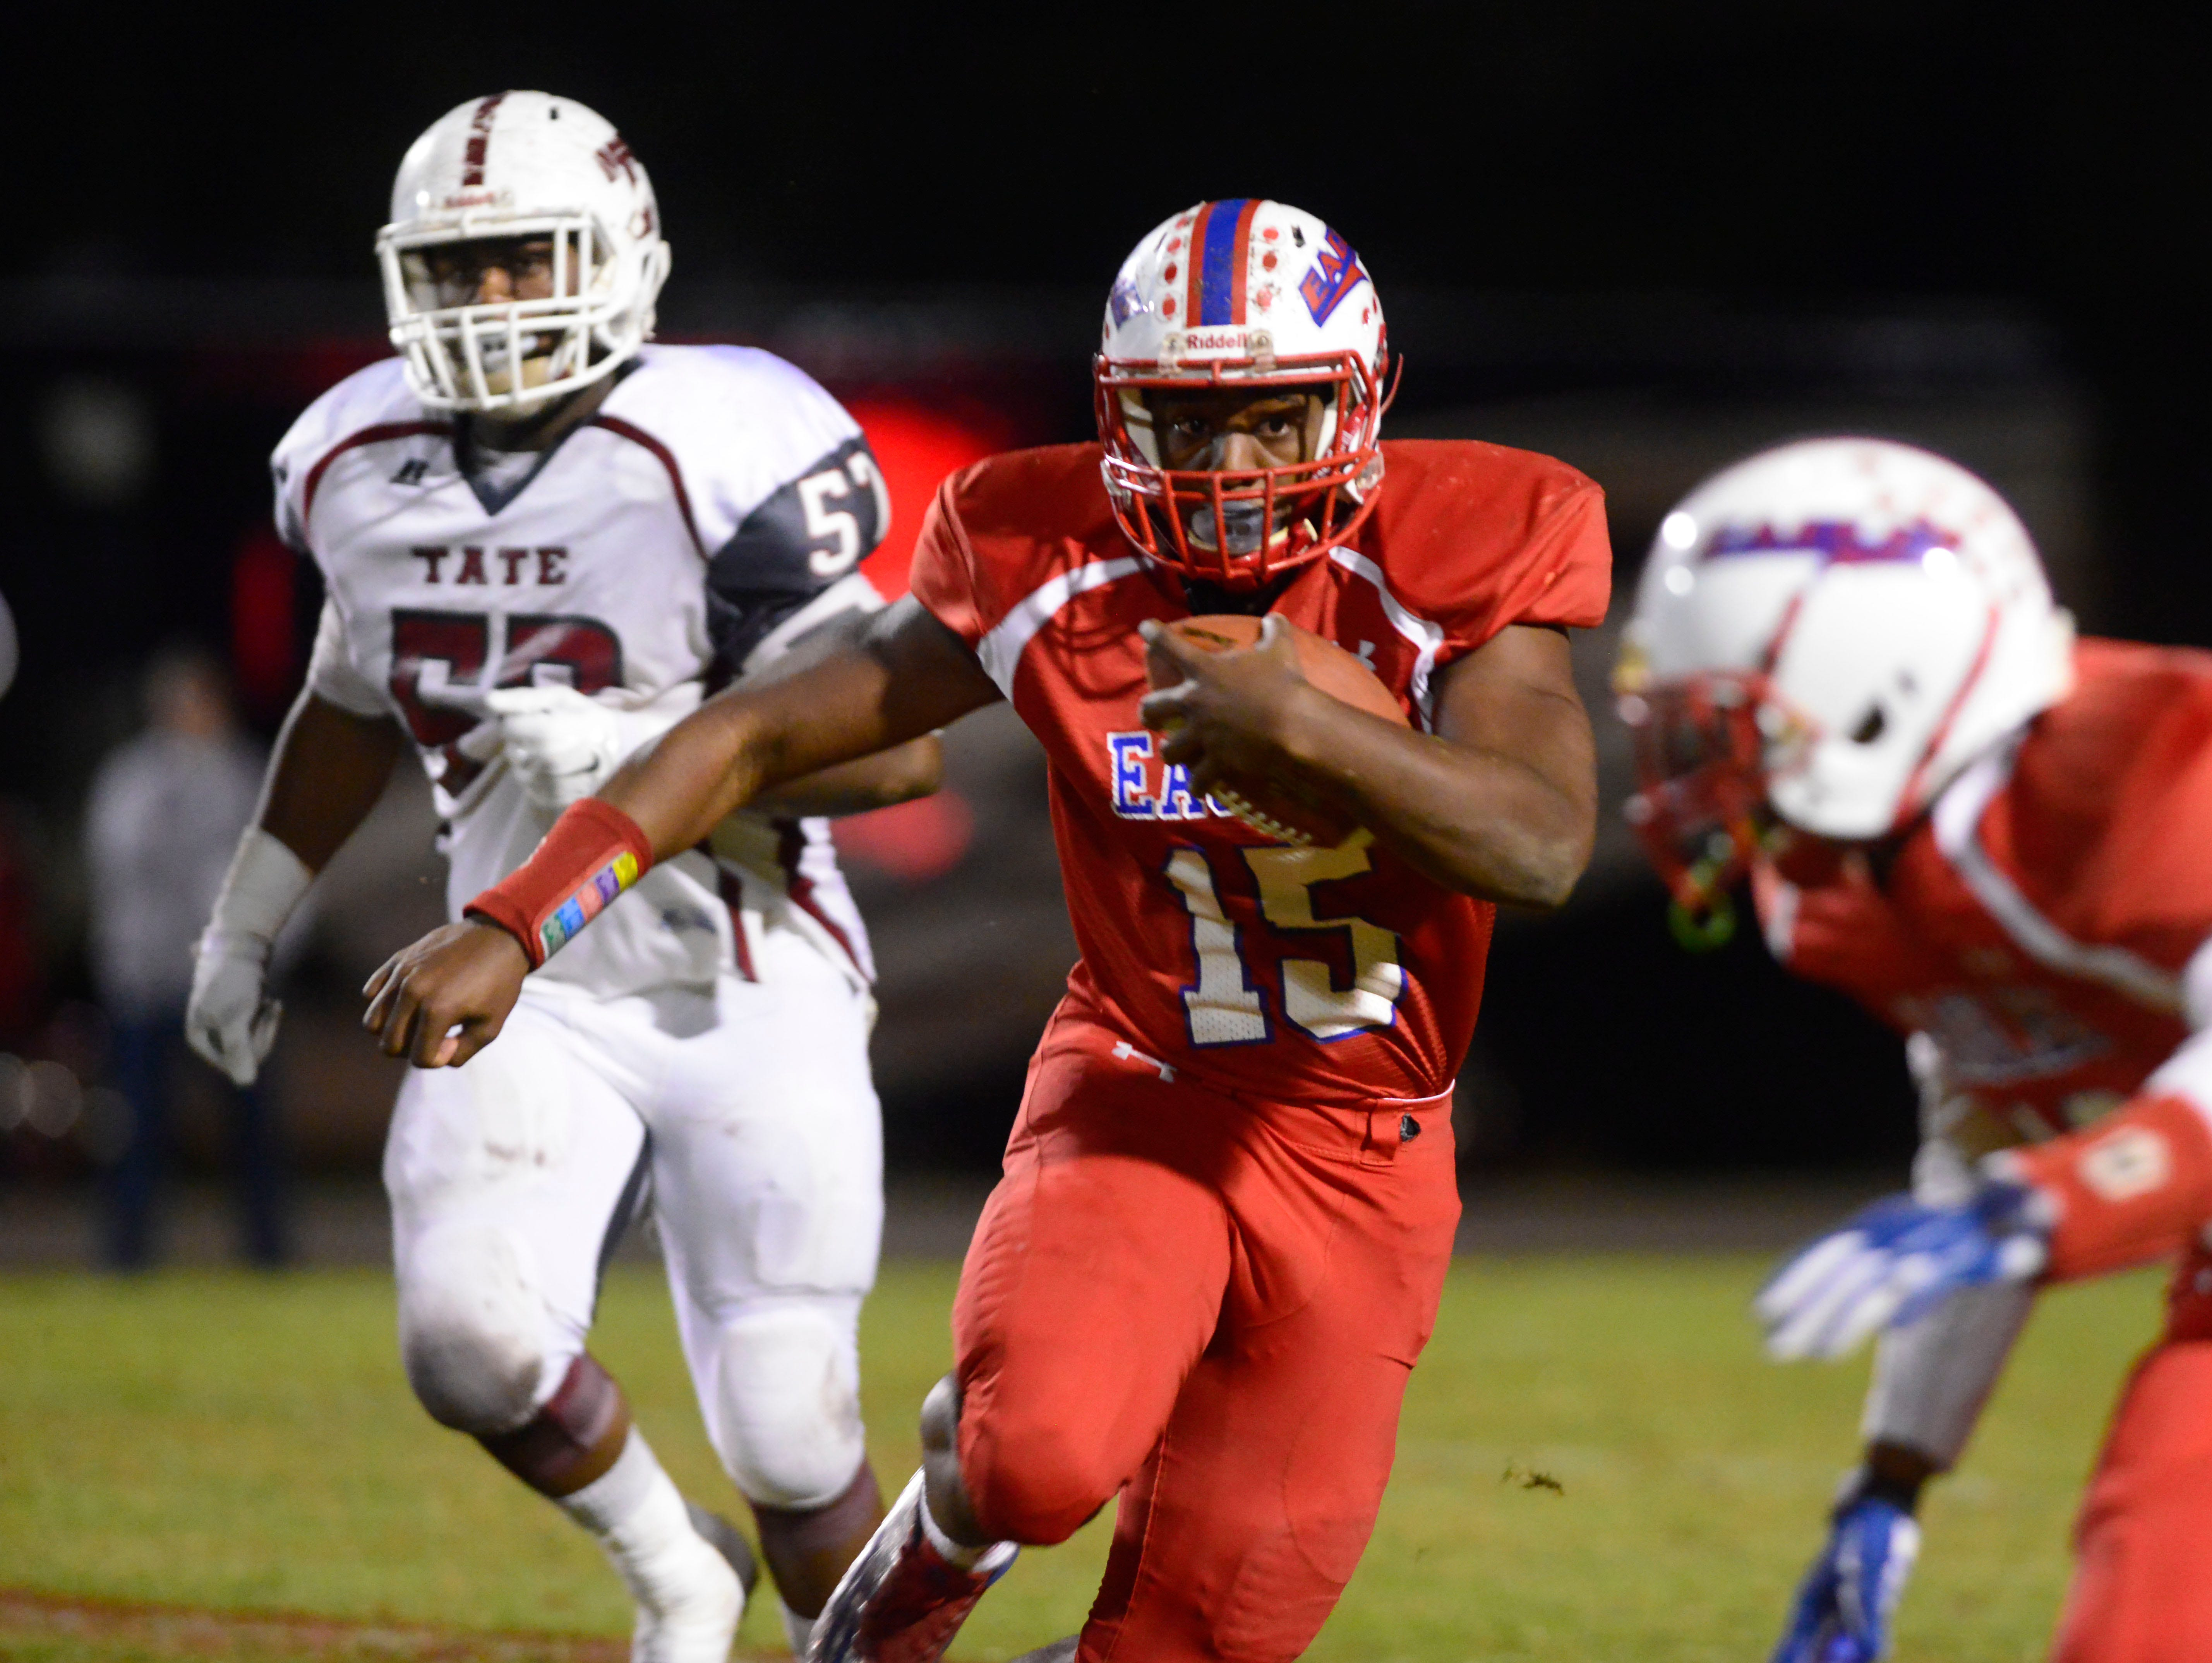 Pine Forest High School quarterback Xavier Saulsberry looks for a clean running path Friday night in the Region 1-6A final against Tate. Tate beat Pine Forest 31-7.